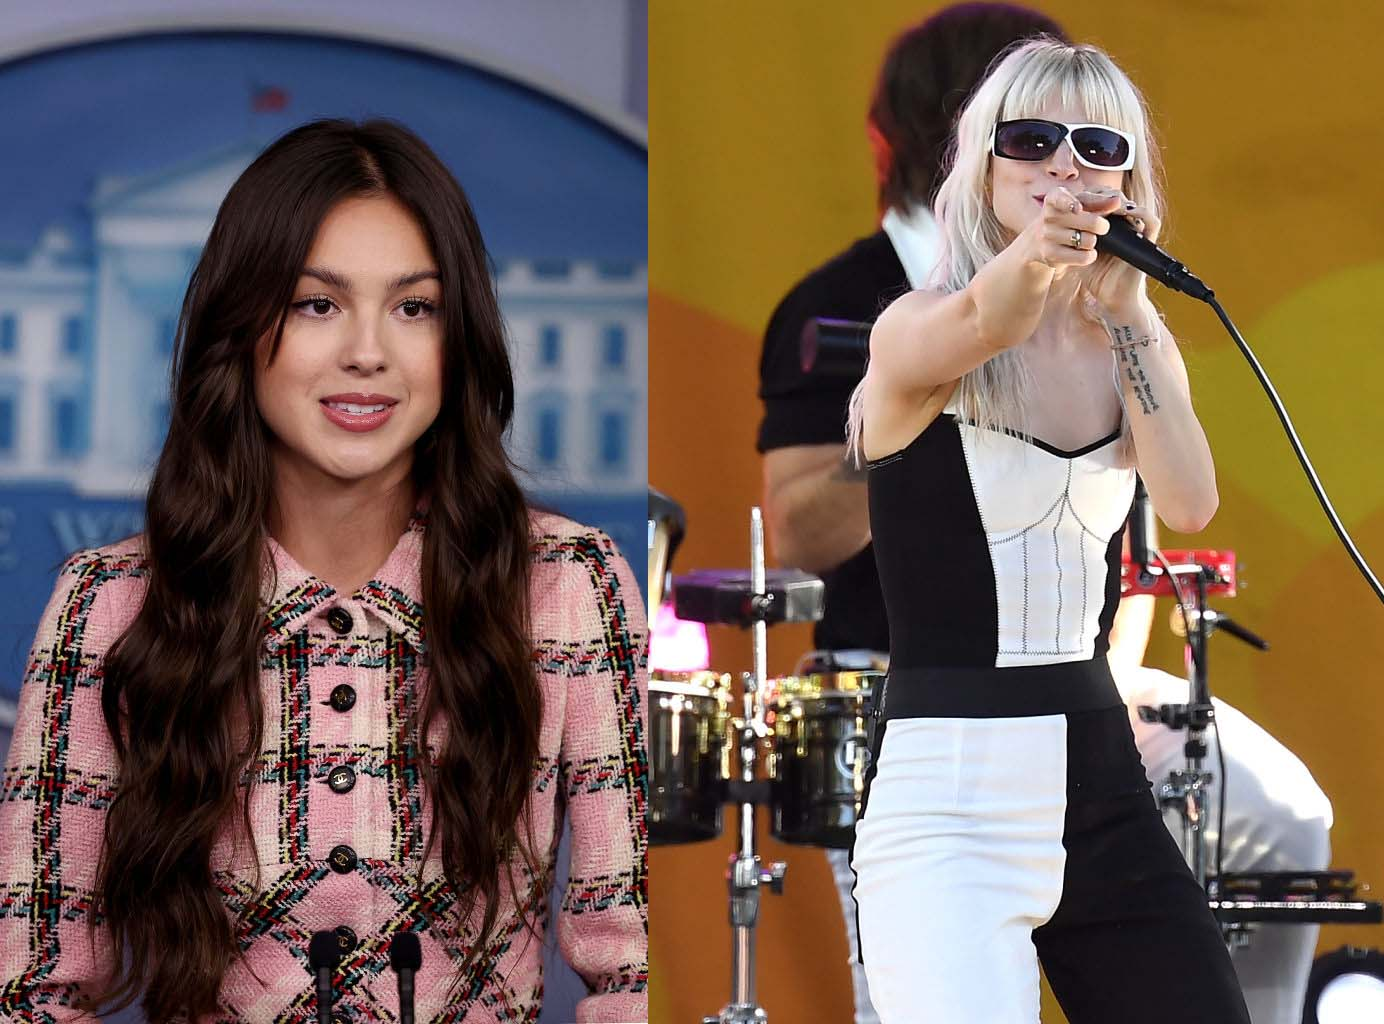 Is Olivia Rodrigo's 'Good 4 U' Really A Copy of Paramore's 'Misery Business'? Singer Attacked By Fans After Plagiarism Accusations